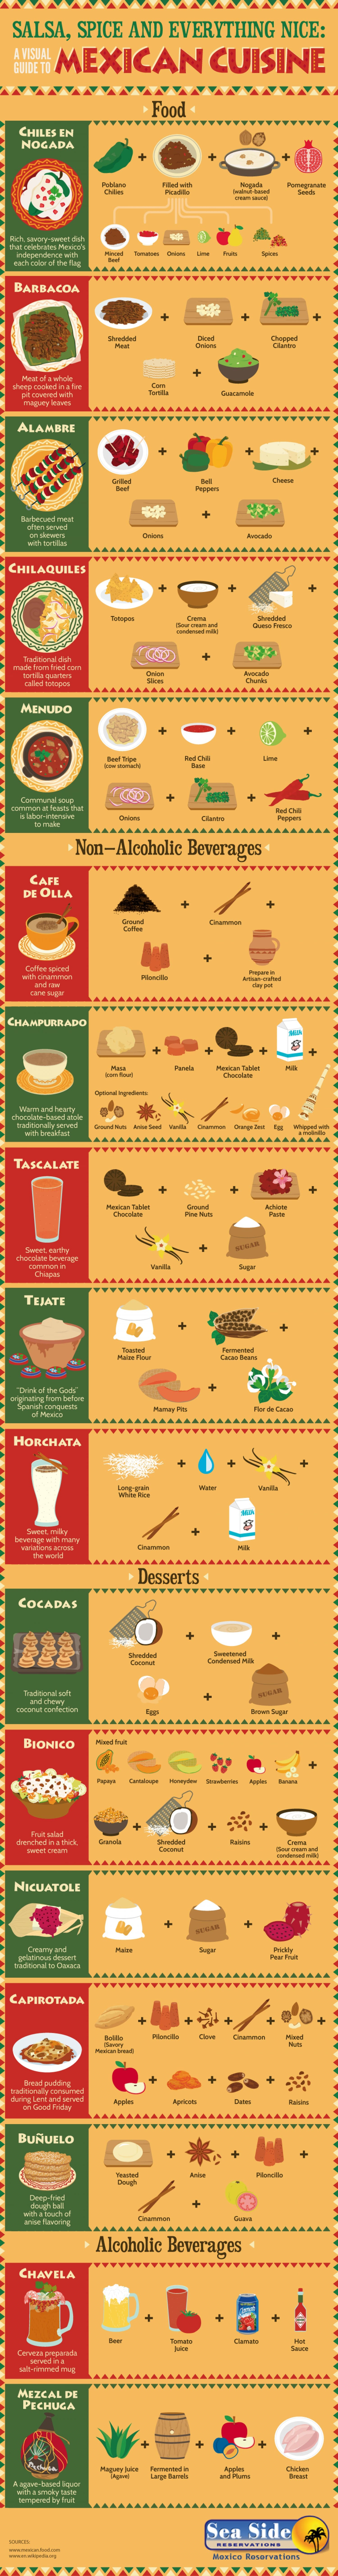 sugar-spice-and-everything-nice-a-visual-guide-to-mexican-cuisine_55354d140a161_w1500.png